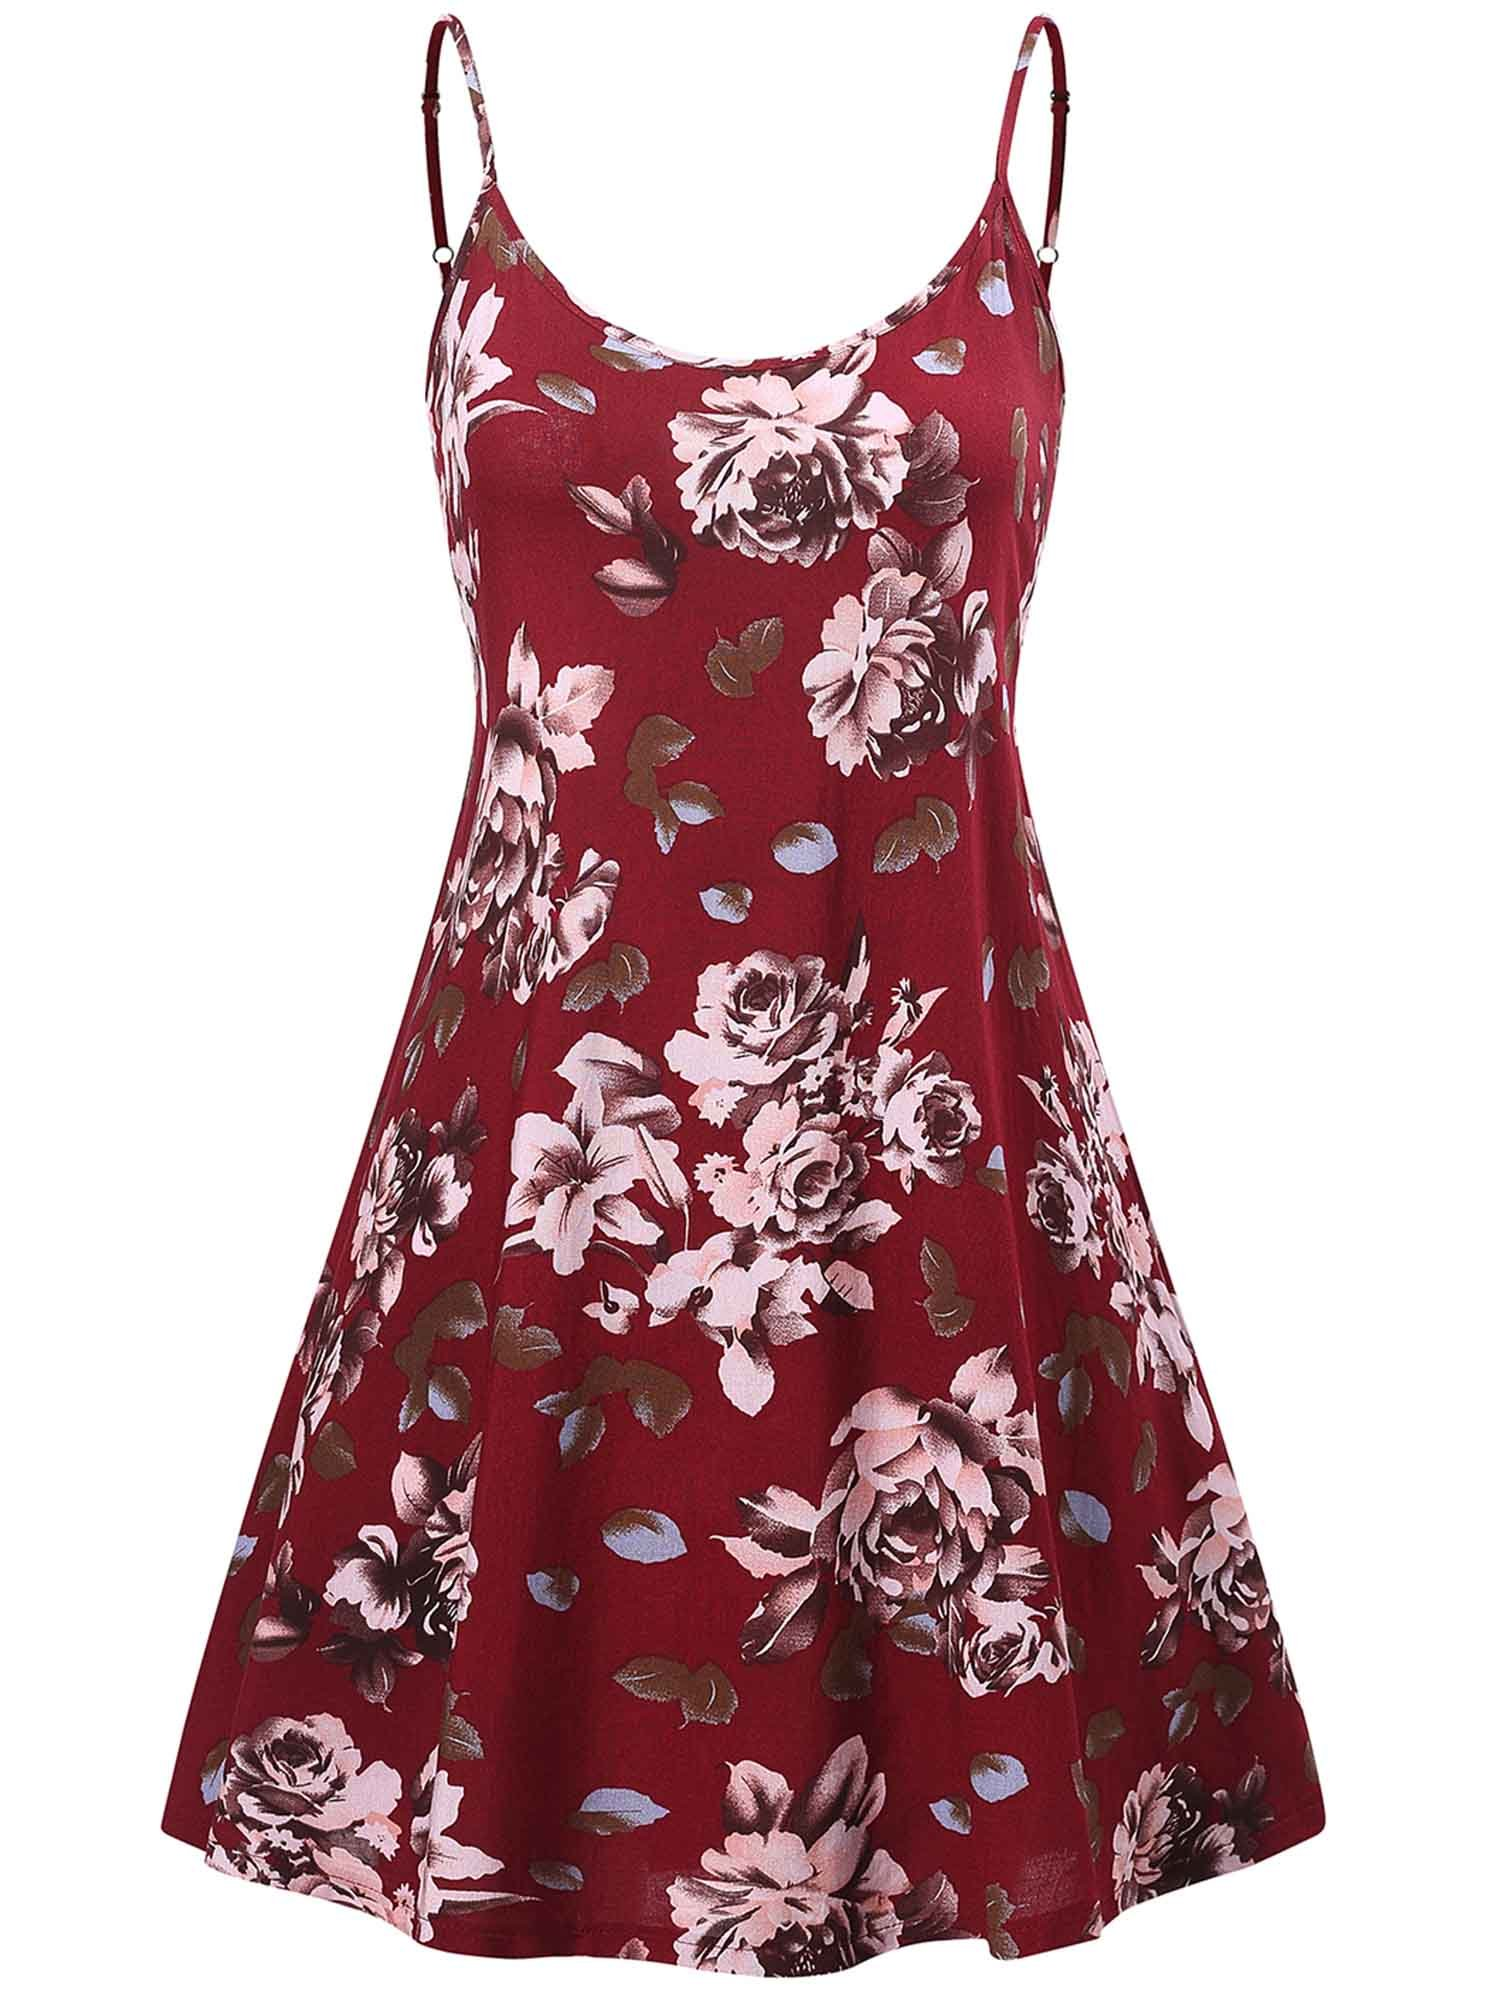 MSBASIC Dress for Women, Strappy Floral Sleeveless Flowvy Dress Red Floral XL